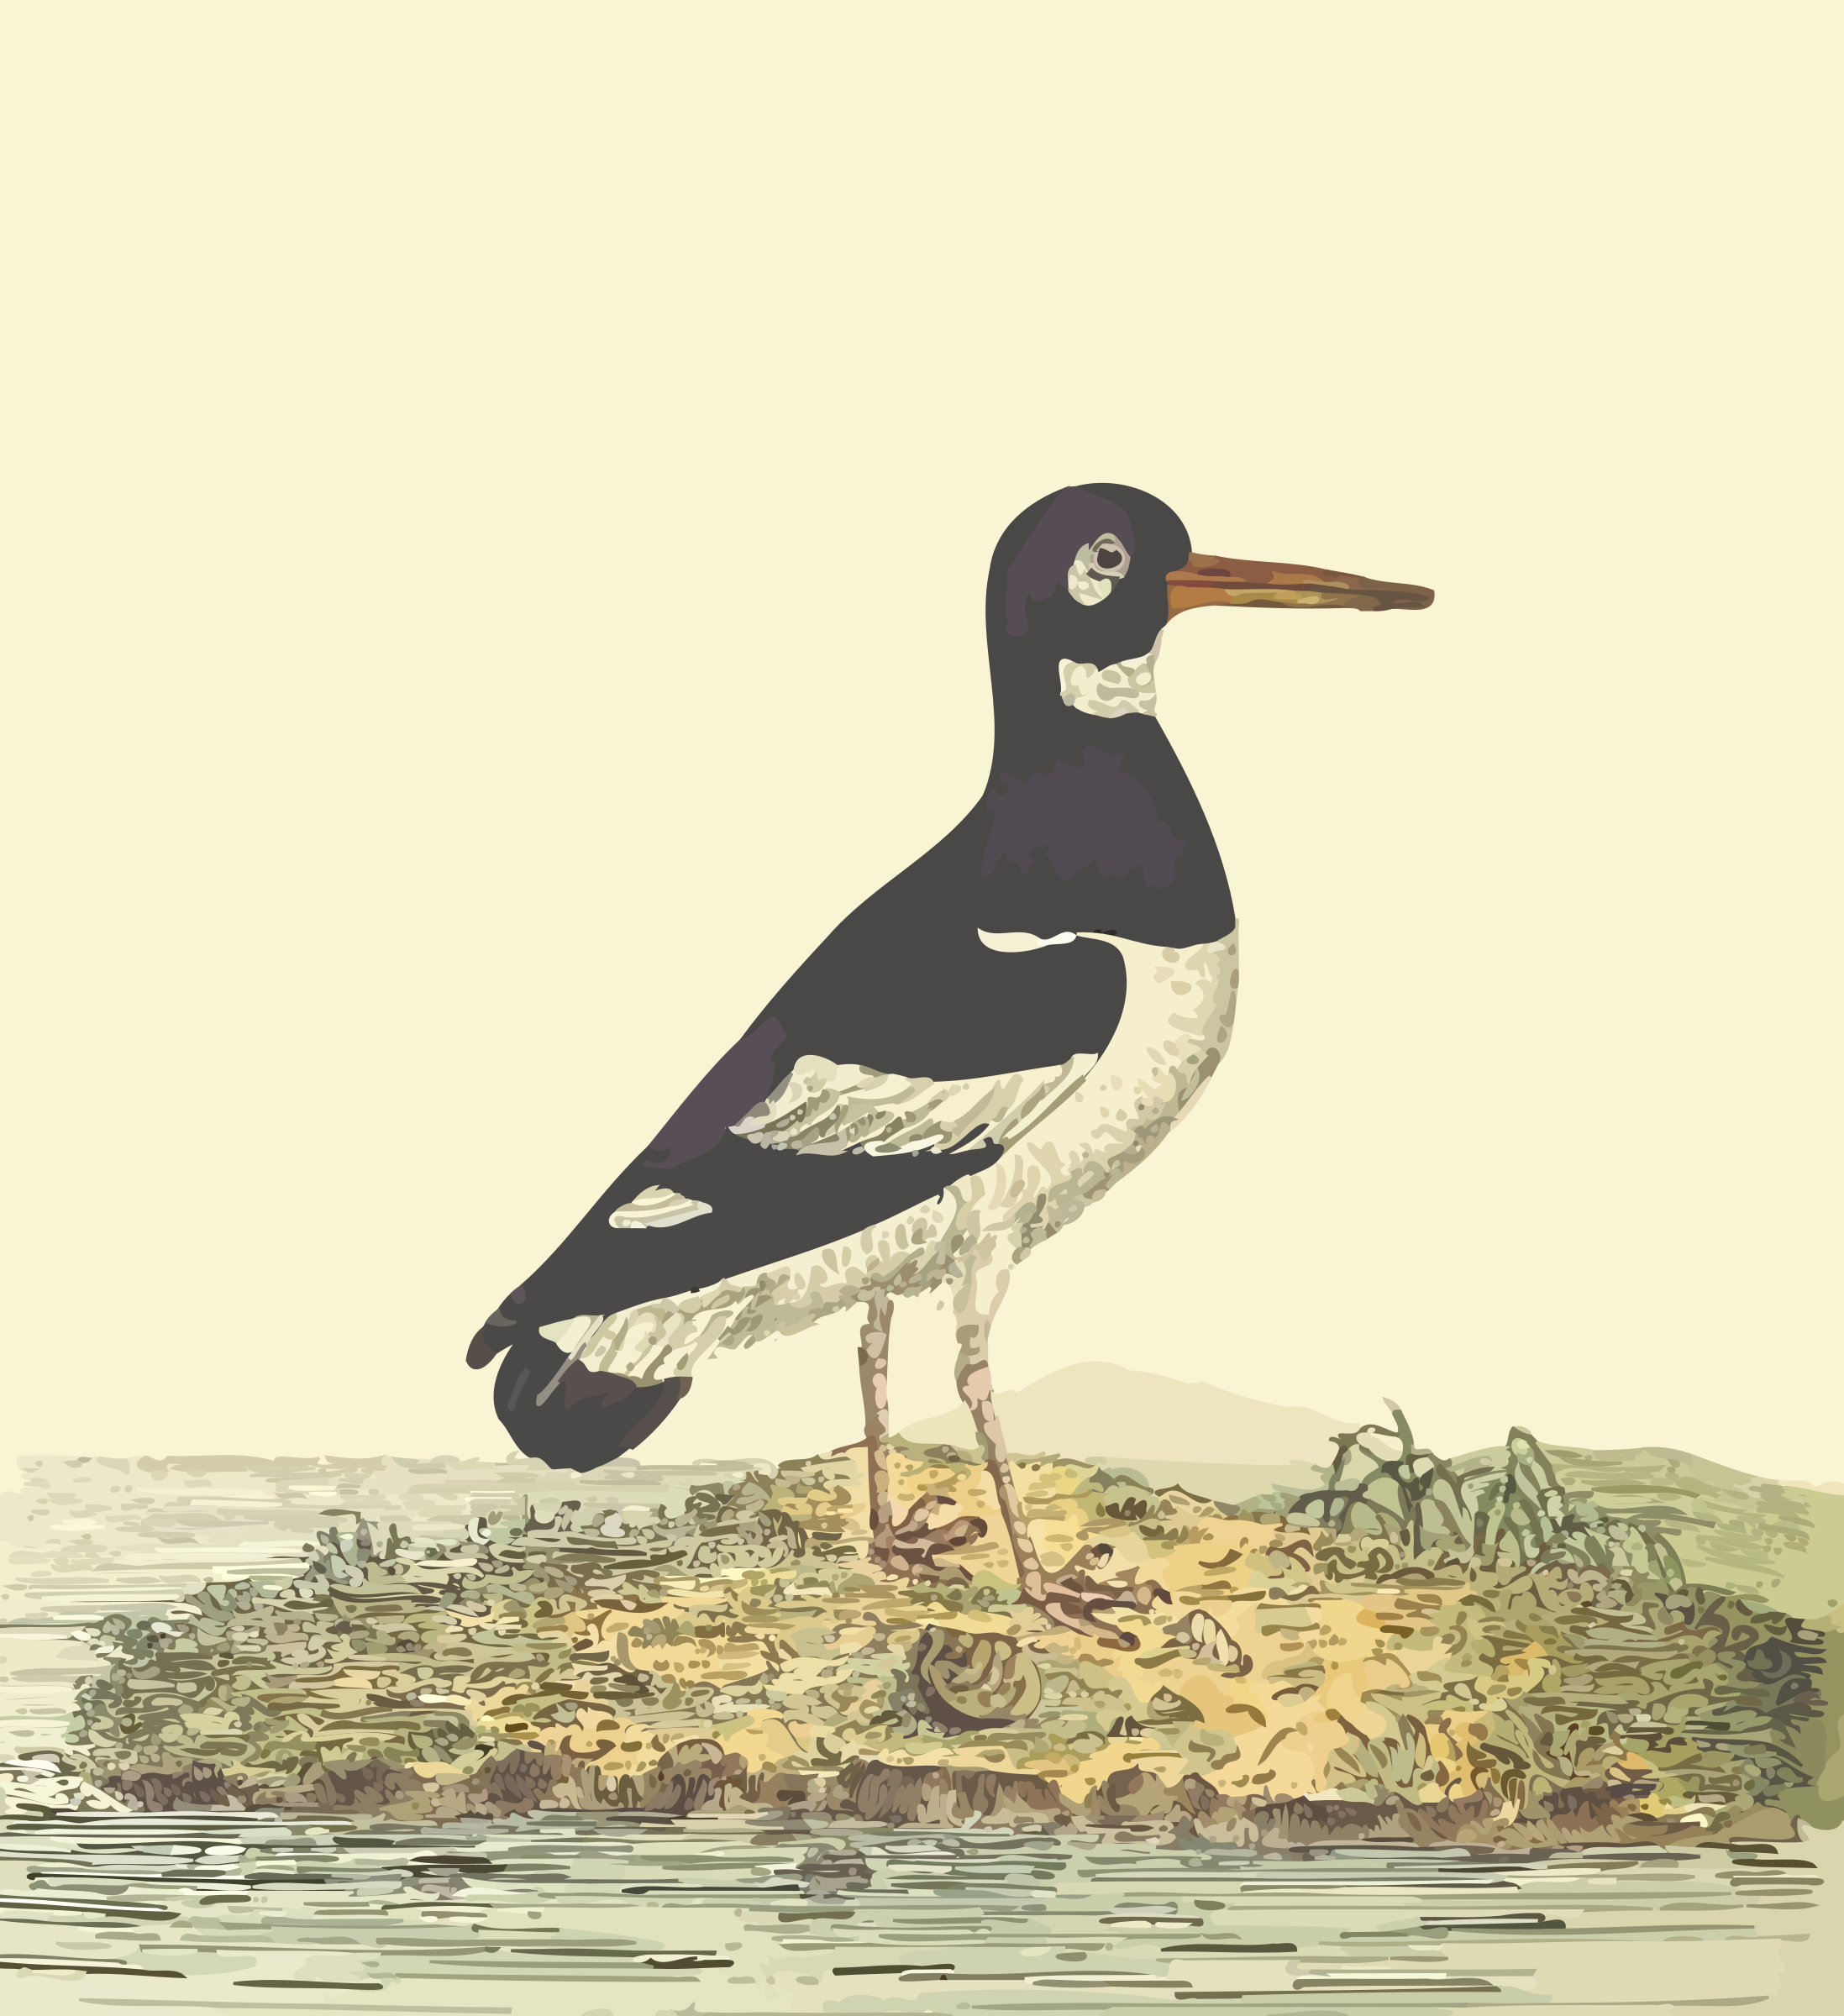 Eurasian oystercatcher (with background) by Firkin